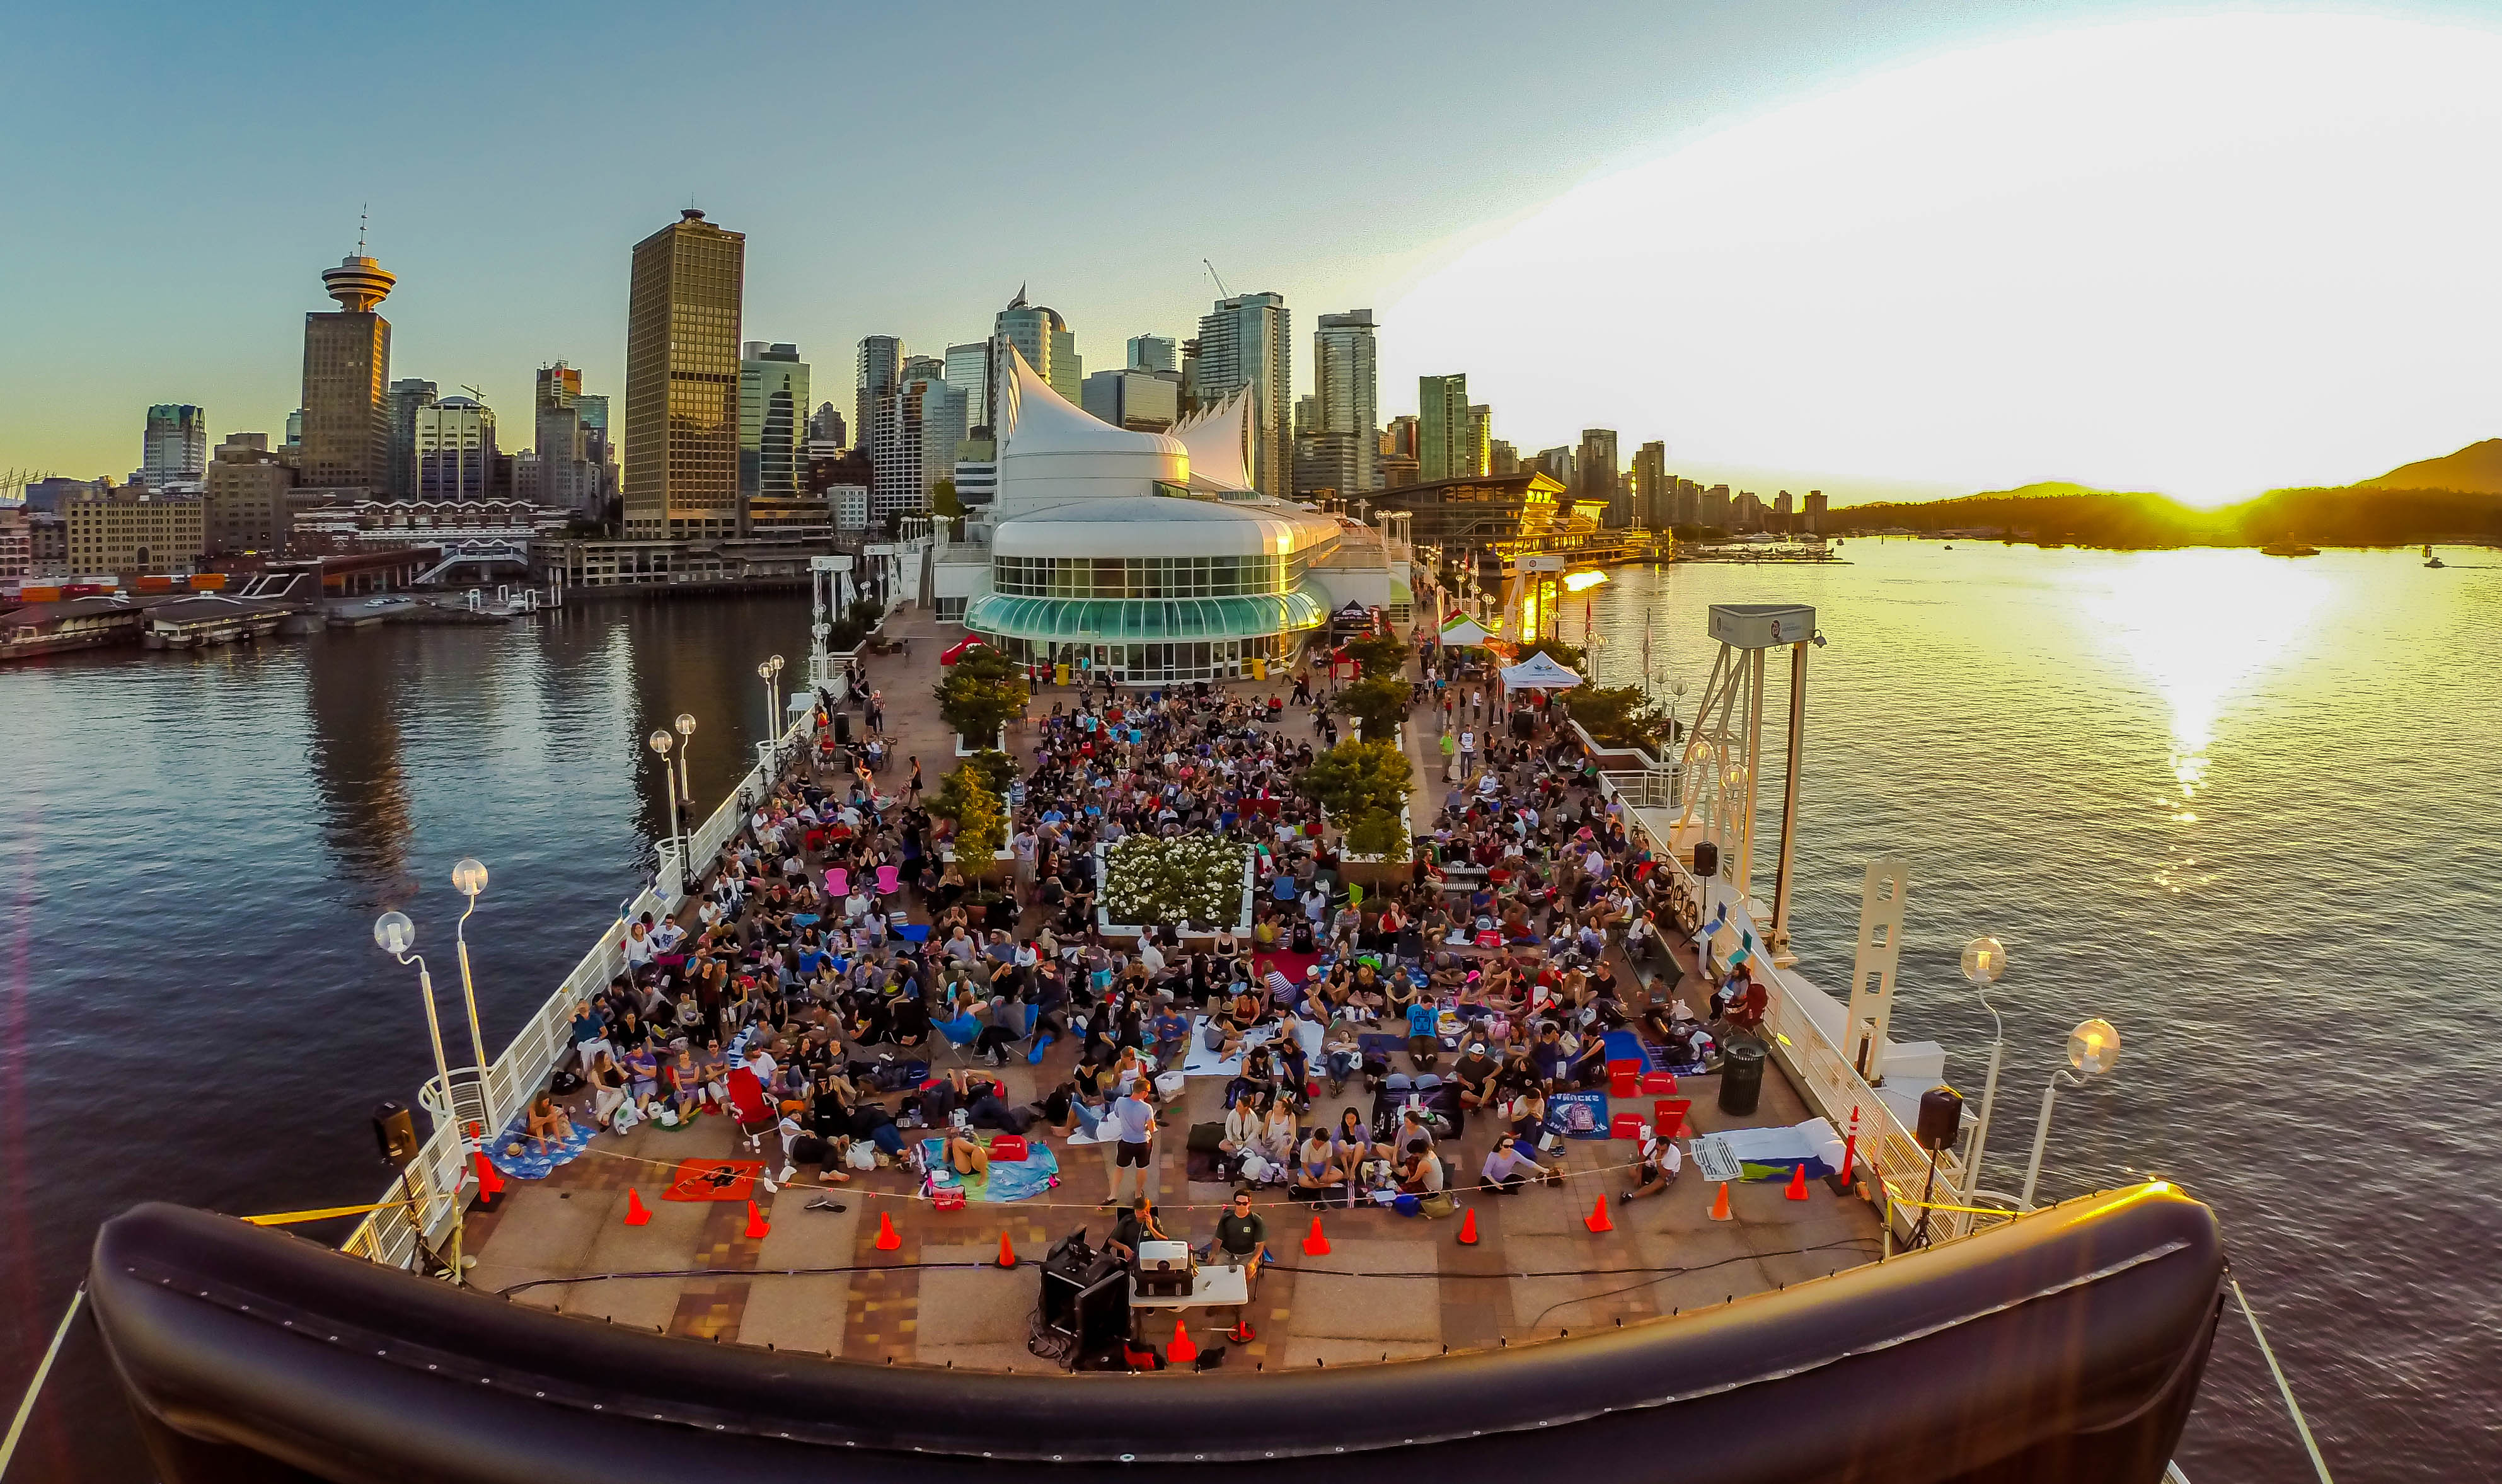 Zumba Cruise 2020! Use code 17136 for a 25 onboard credit!